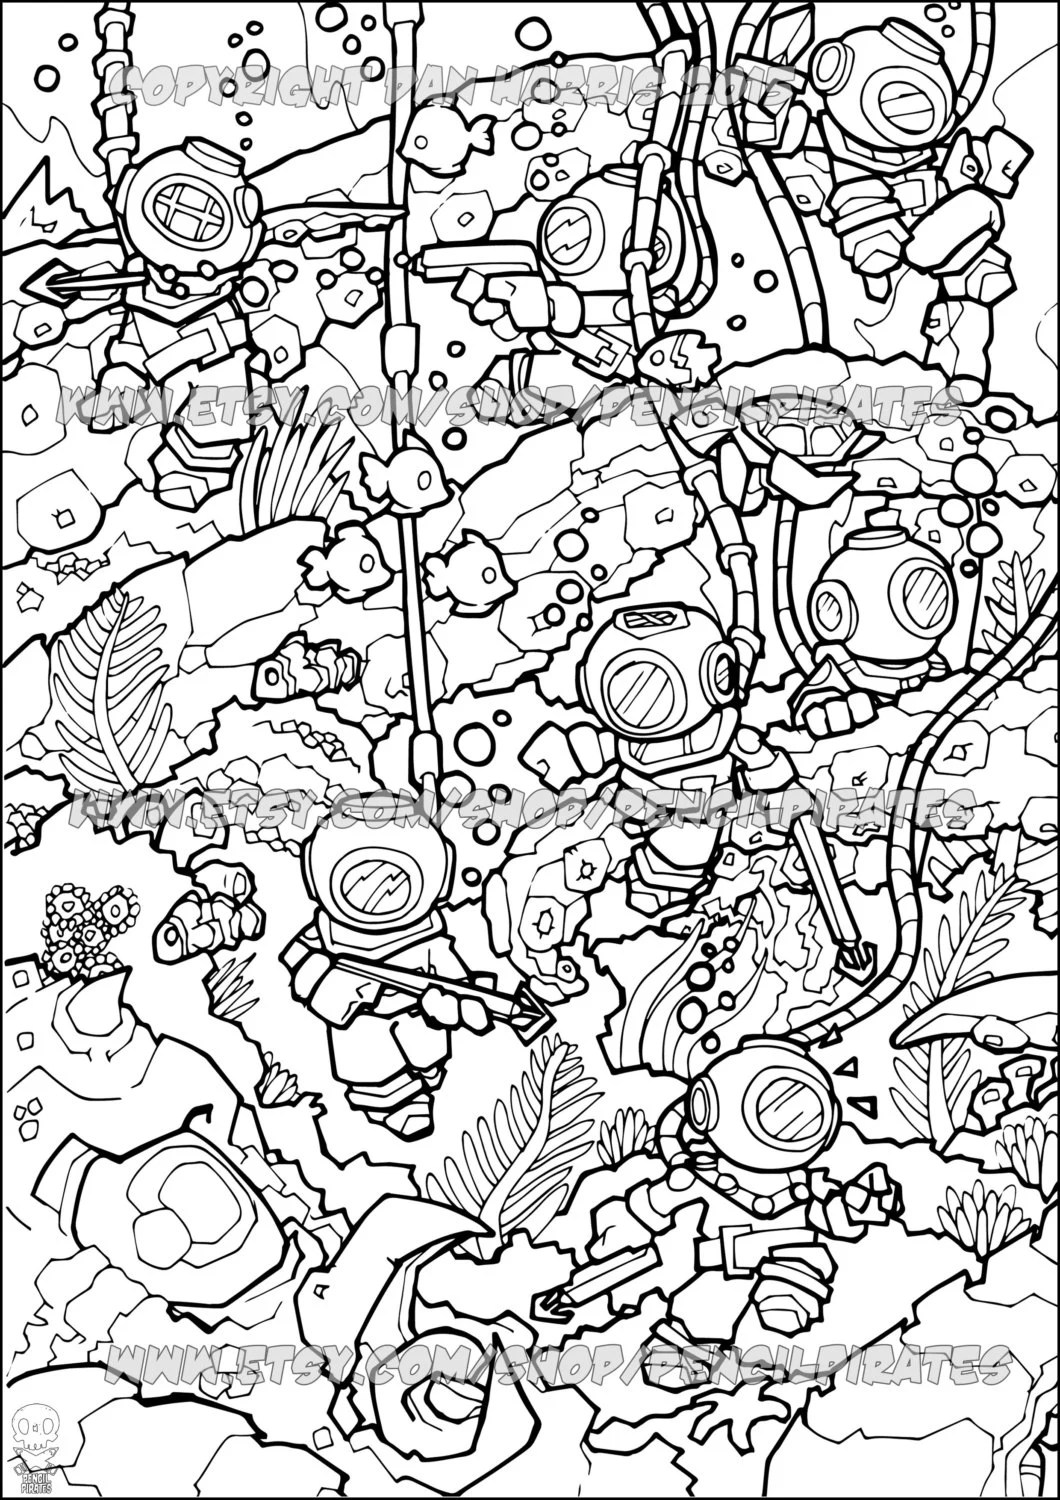 Underwater Adventure Colouring Page Adult Colouring Book Page